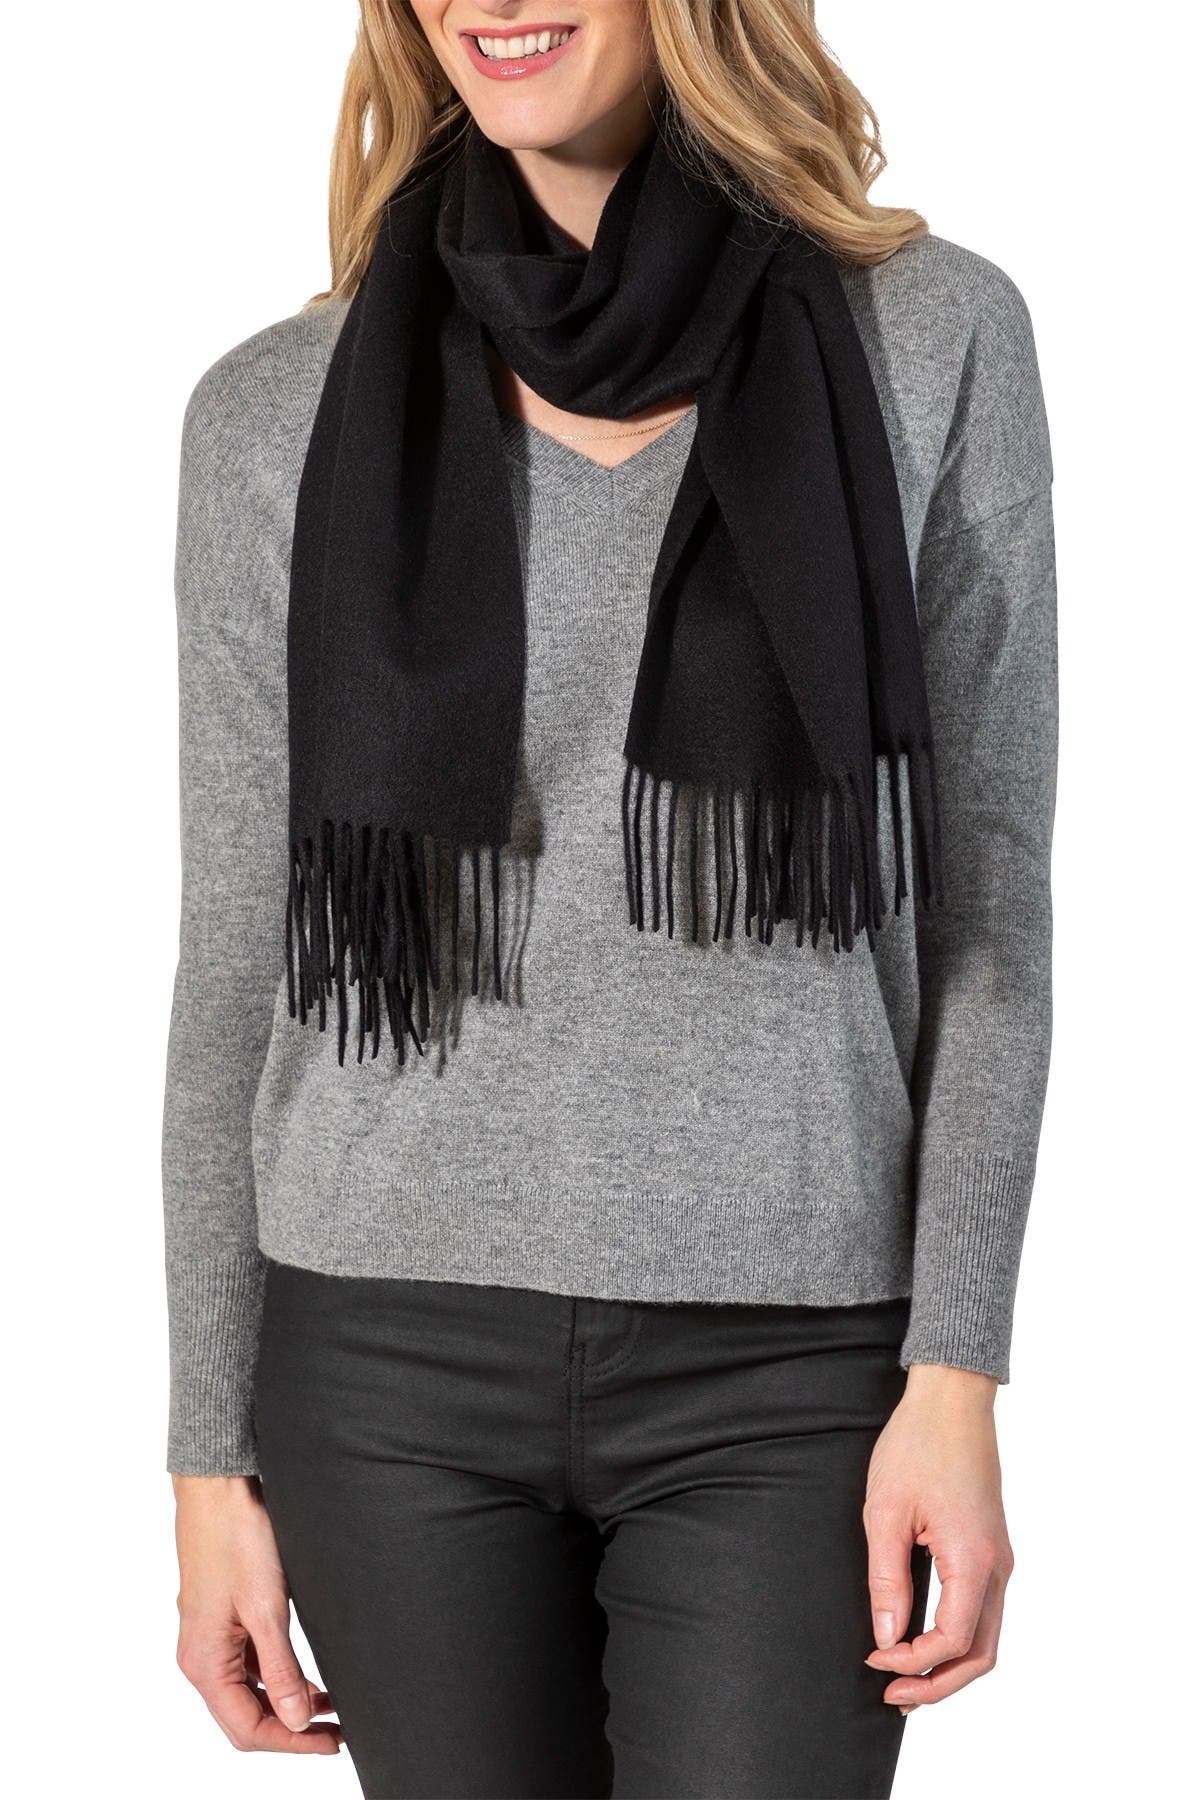 Image of AMICALE Solid Cashmere Wrap - Unisex